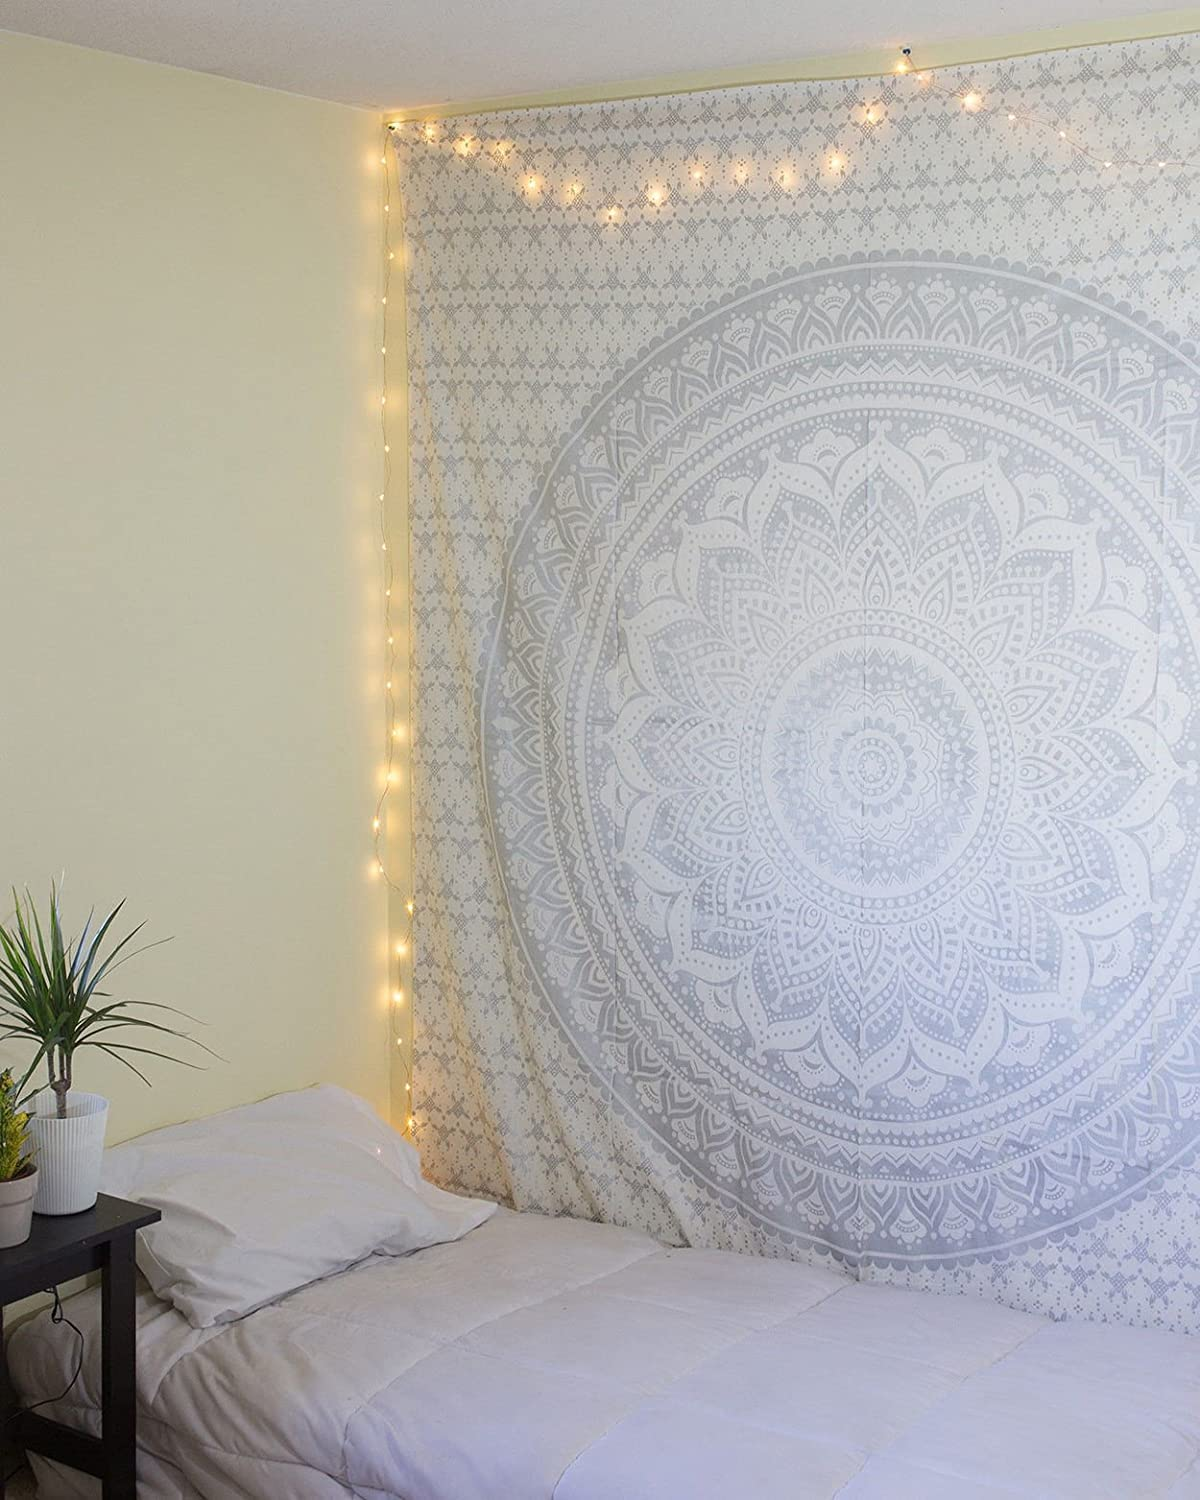 Cotone 85x55 inch raajsee Esclusiva prestampati Original Gold Ombra Tapestry by Dorm Decor Tapestry Hippie Bedspread Tapestry 140/* 220cms Argento Boho Bohemian Tapestry Wall Hanging Tapestry